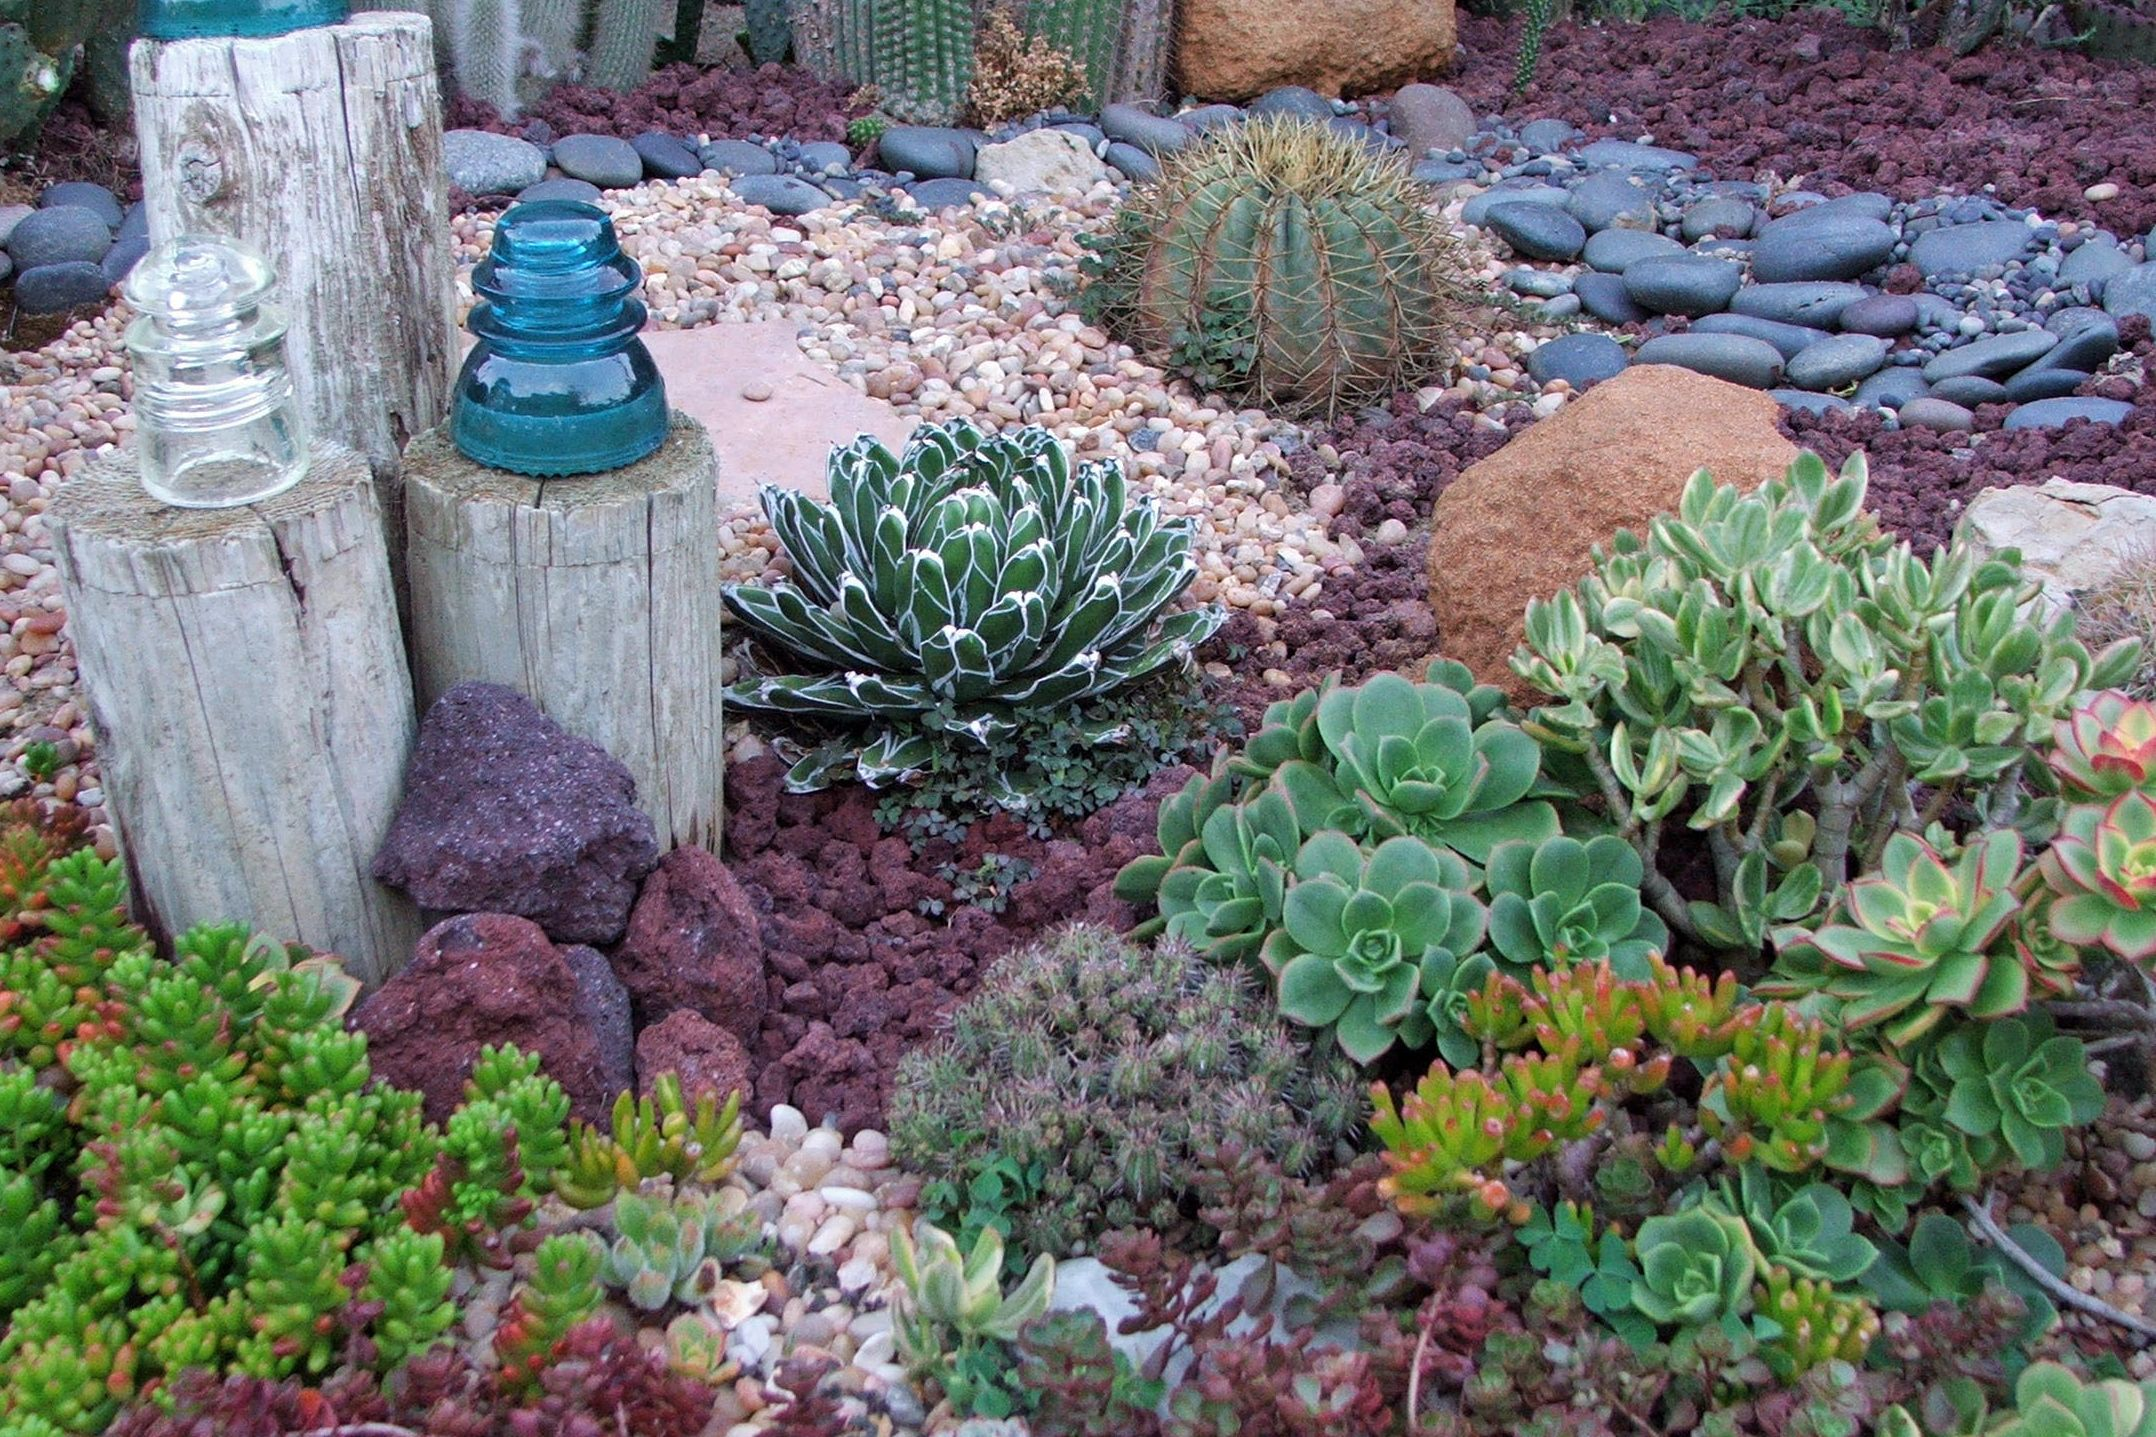 17 Best 1000 images about Cactus garden ideas on Pinterest Gardens